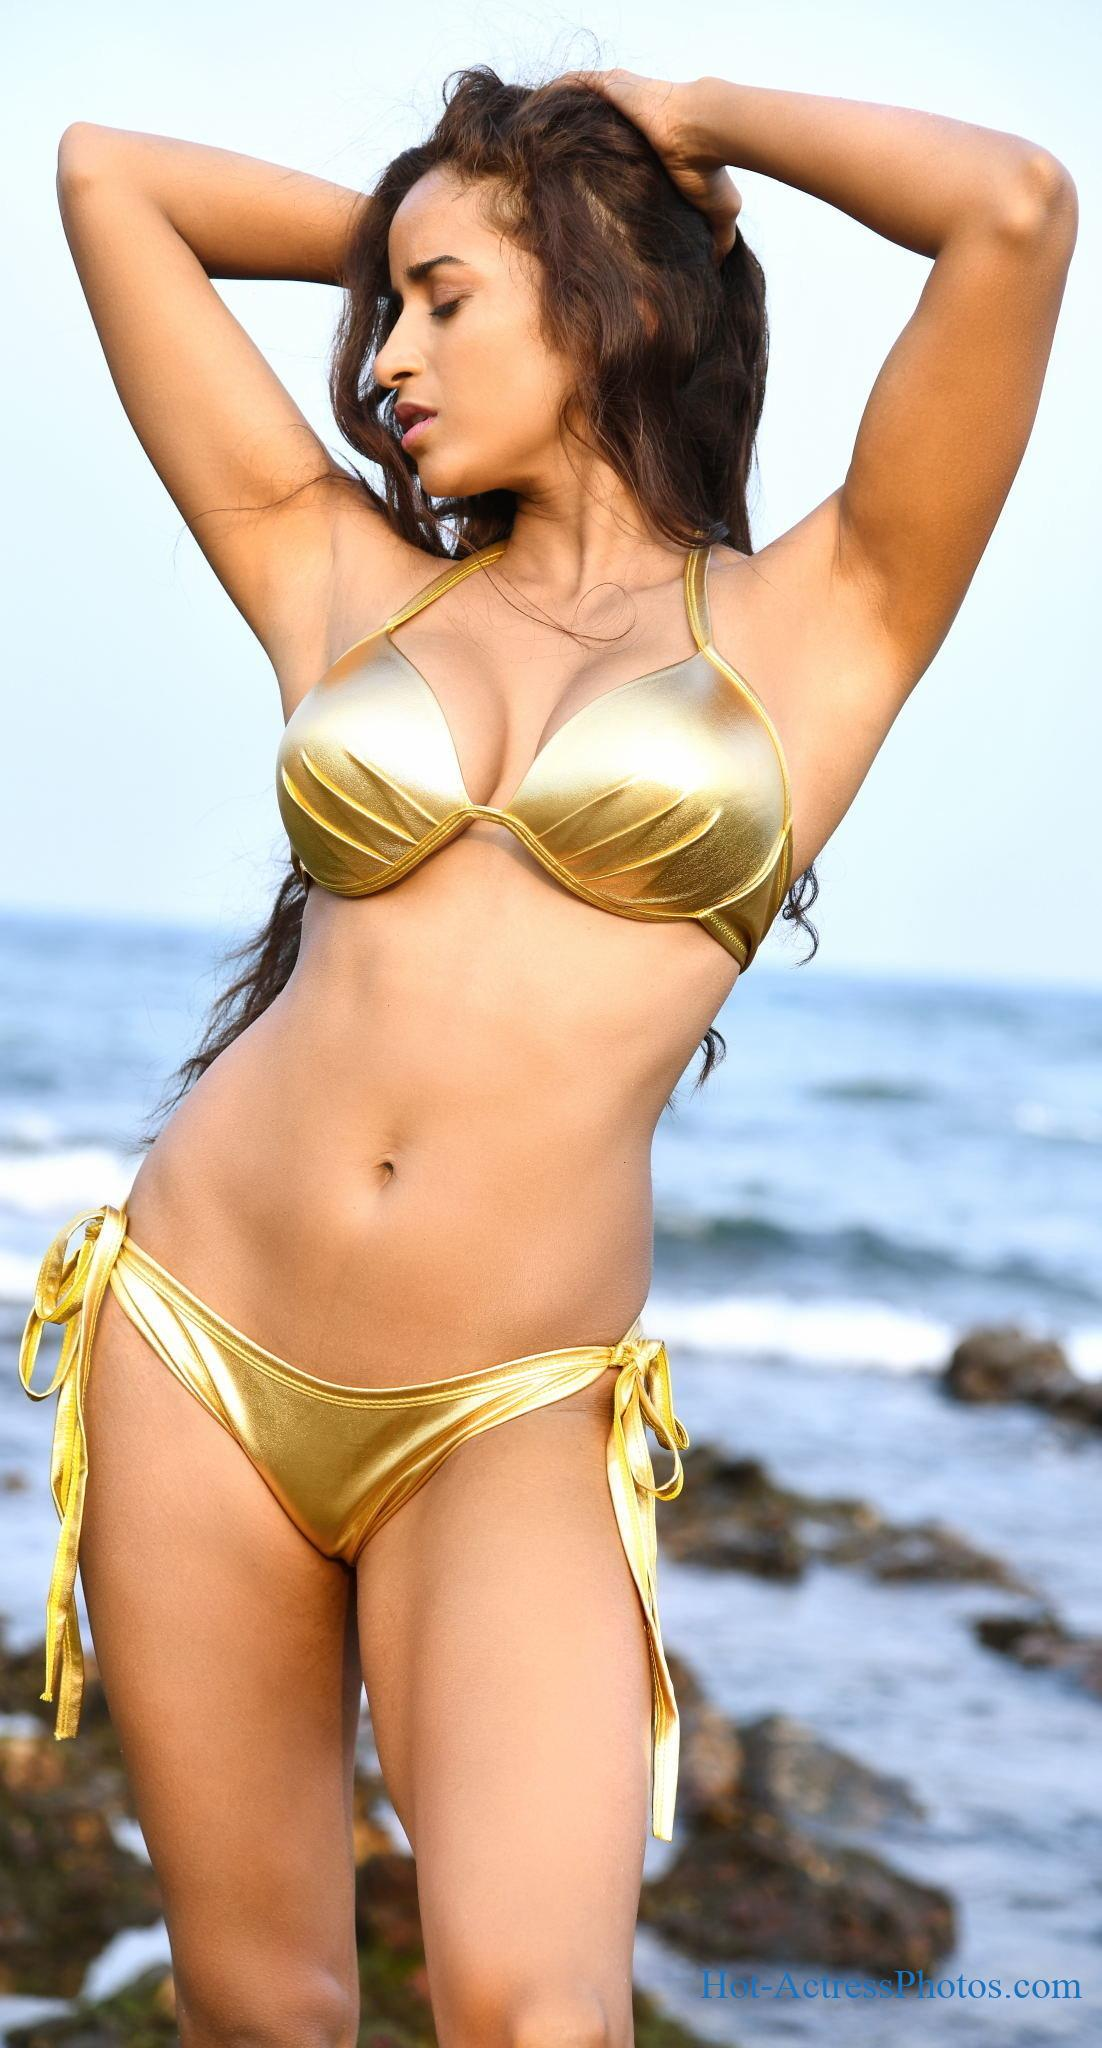 Pooja Bhalekar Hot Cleavage And Navel Photos